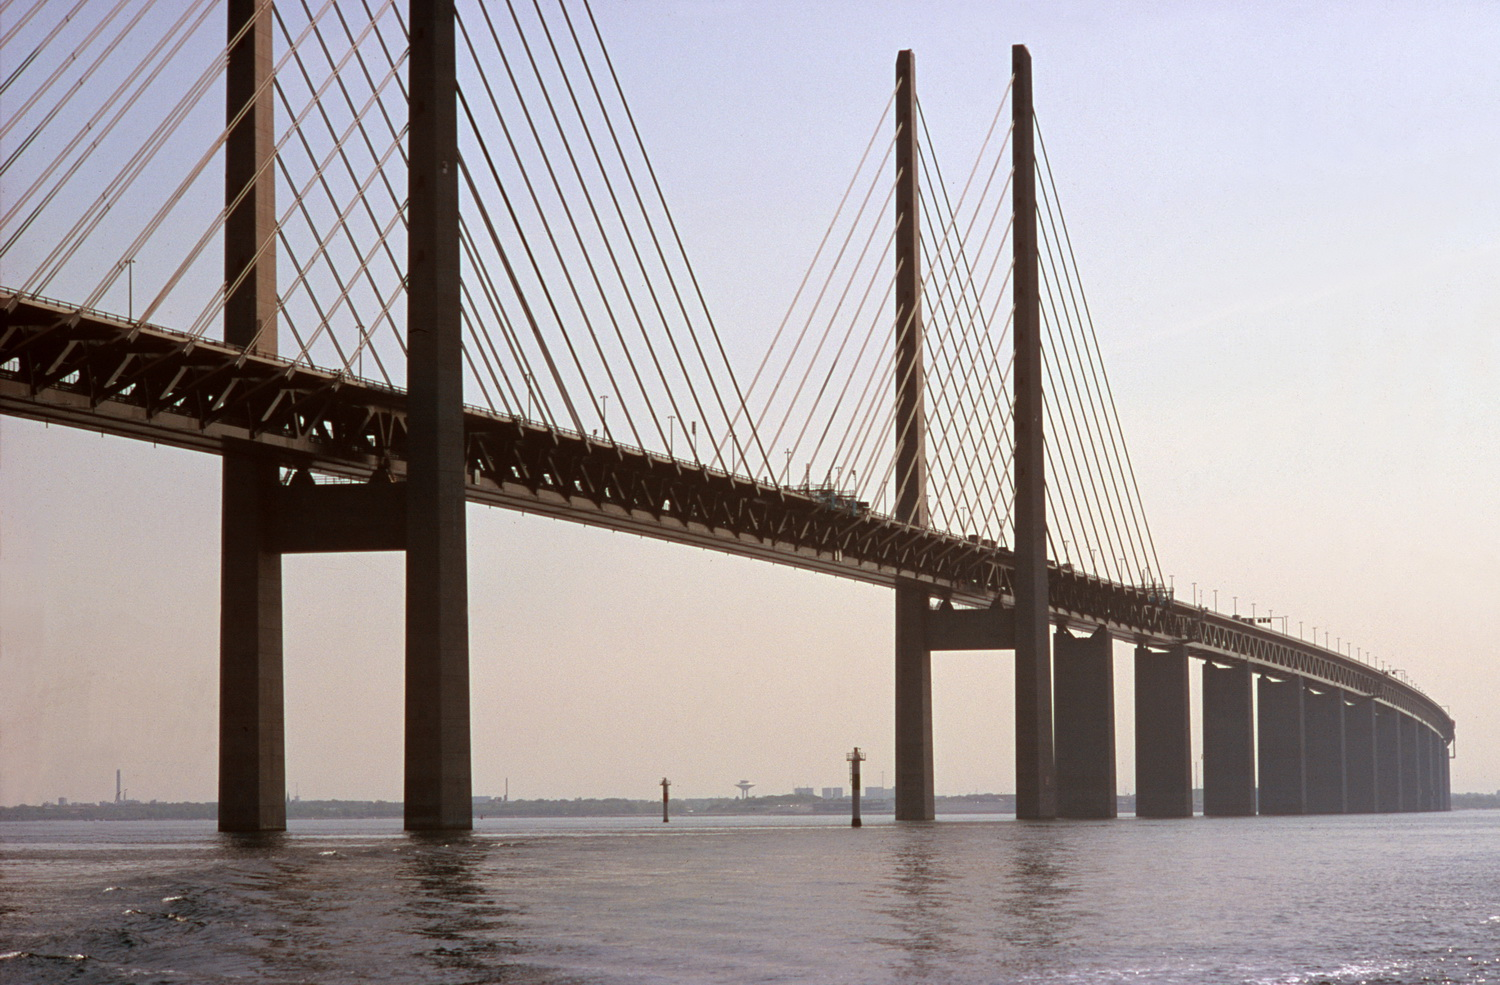 case study on oresund bridge construction essay Ebscohost serves thousands of libraries with premium essays, articles and other content including the oresund bridge get access to over 12 million other articles.